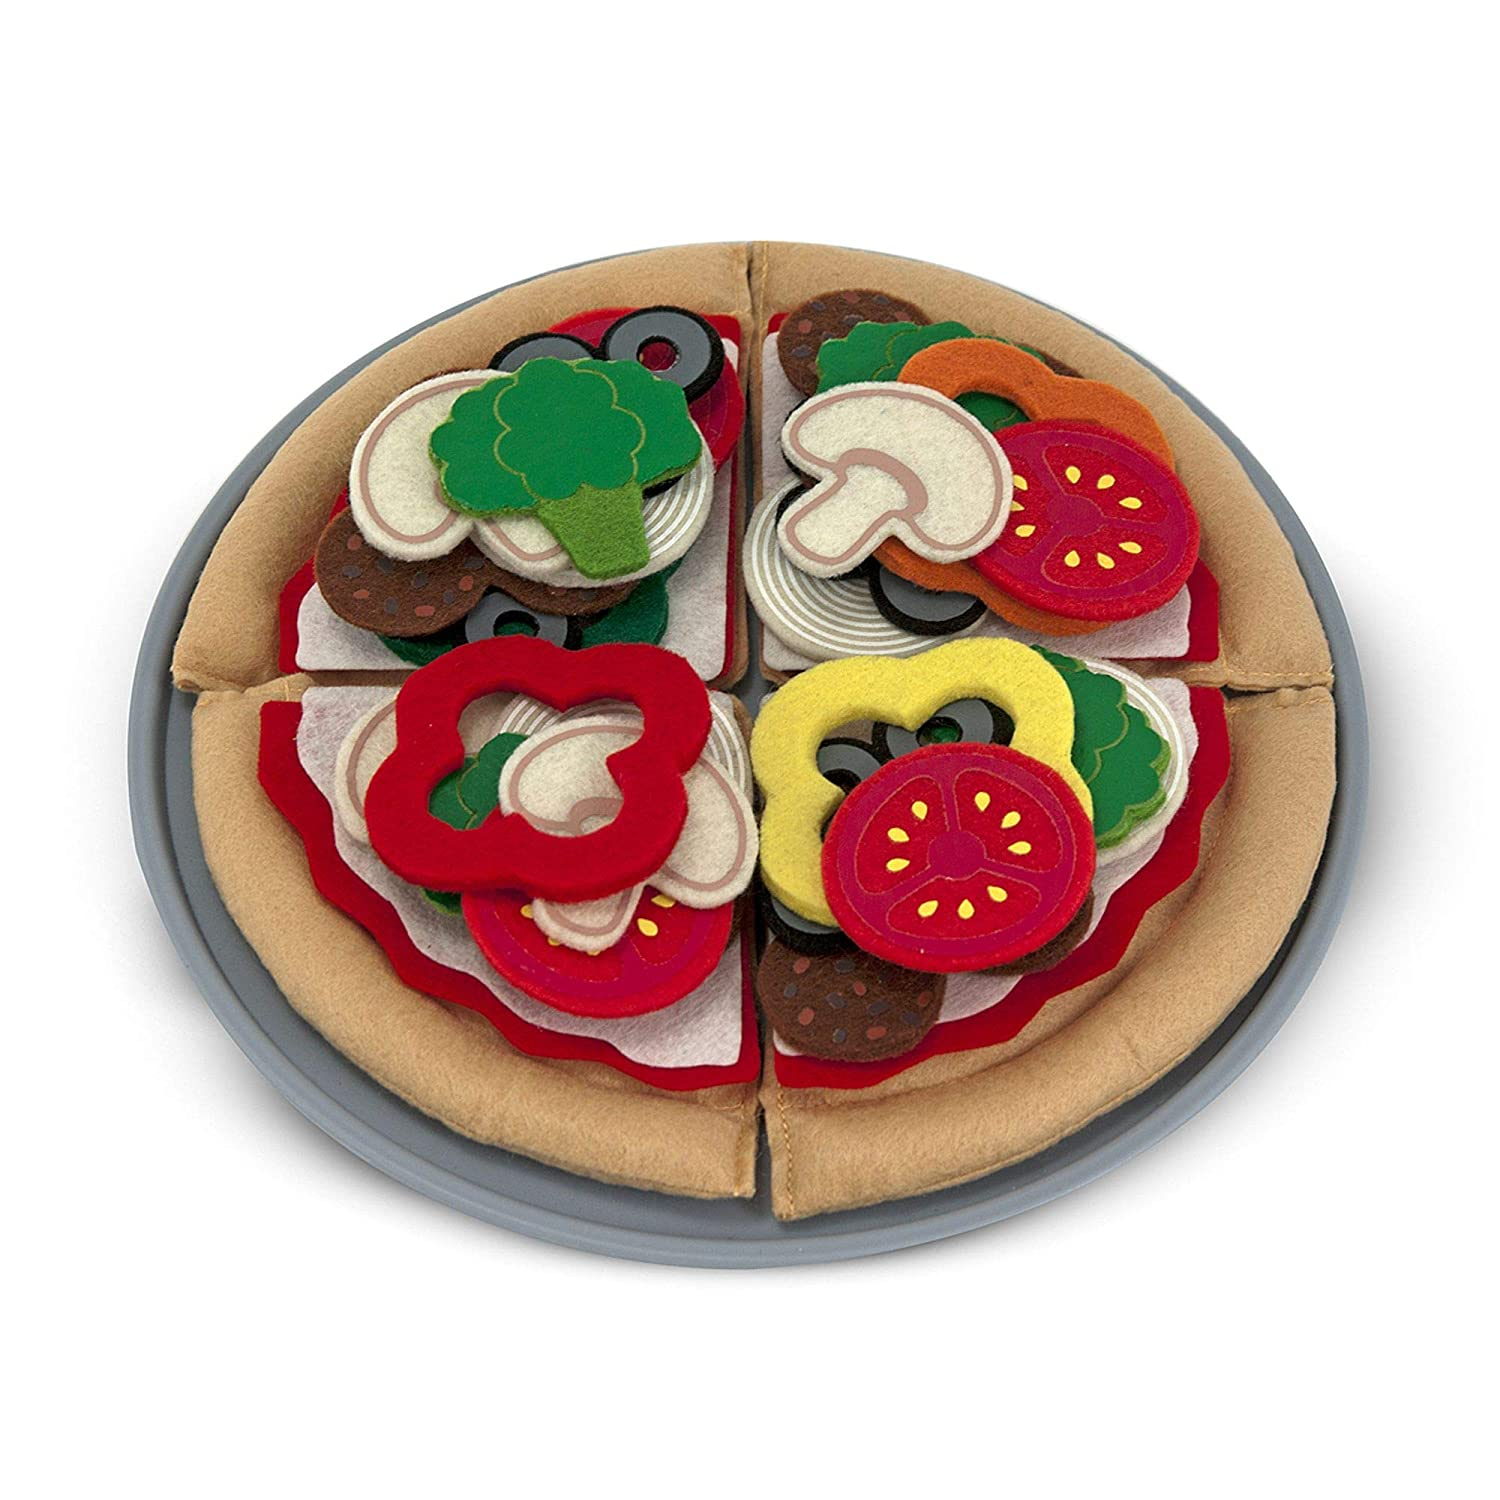 "Melissa & Doug Felt Play Food Pizza Set, Pretend Play, Easy to Clean, Includes Play Ideas, 42 Durable Pieces, 11.25"" H x 11.25"" W x 1.1"" L"